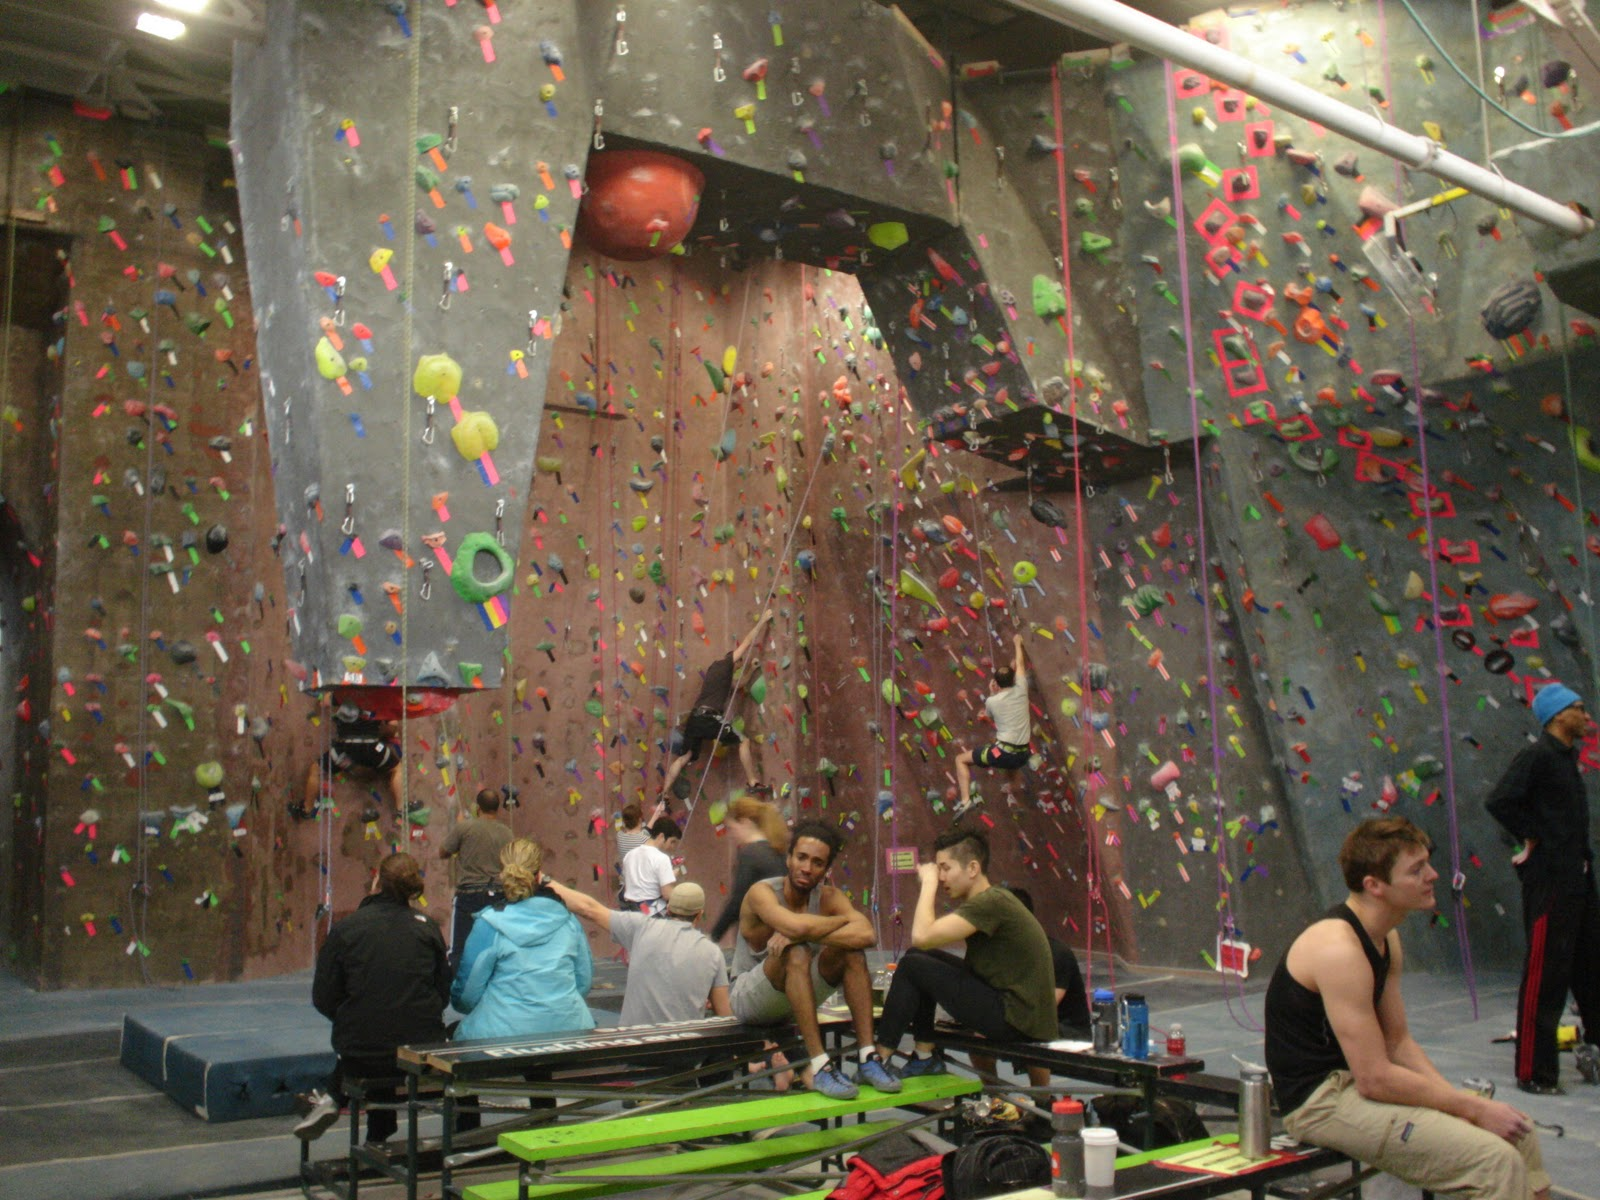 Brooklyn Cyclones New York City, Pay a Visit: Indoor Rock Climbing at Brooklyn Boulders